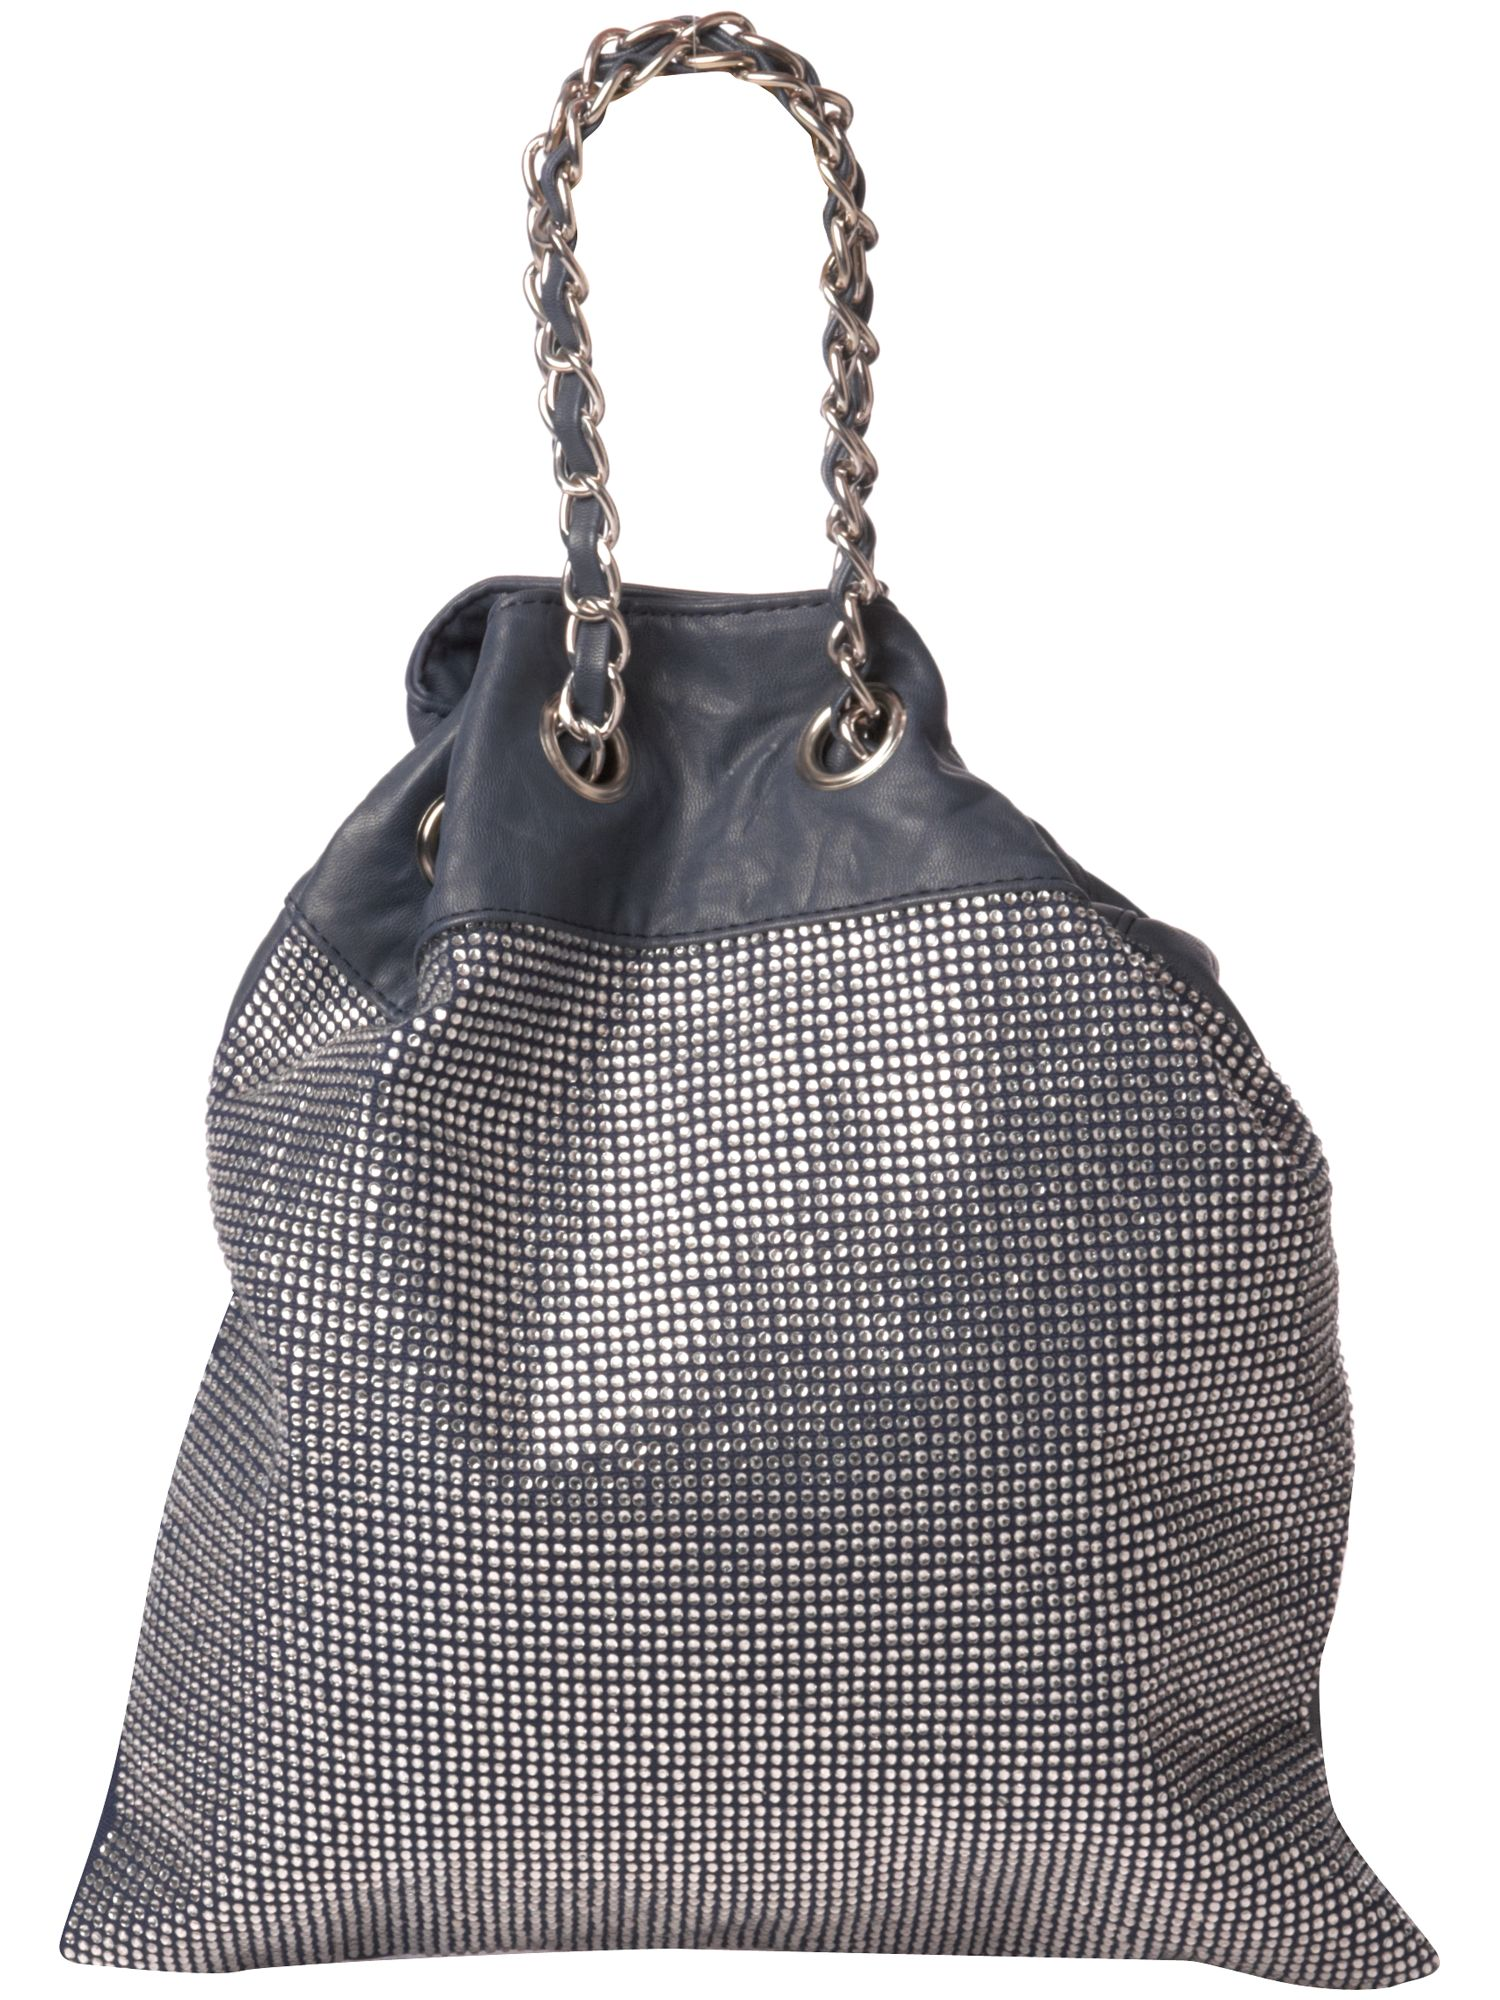 Max C Tiny stone stud pu shoulder bag product image